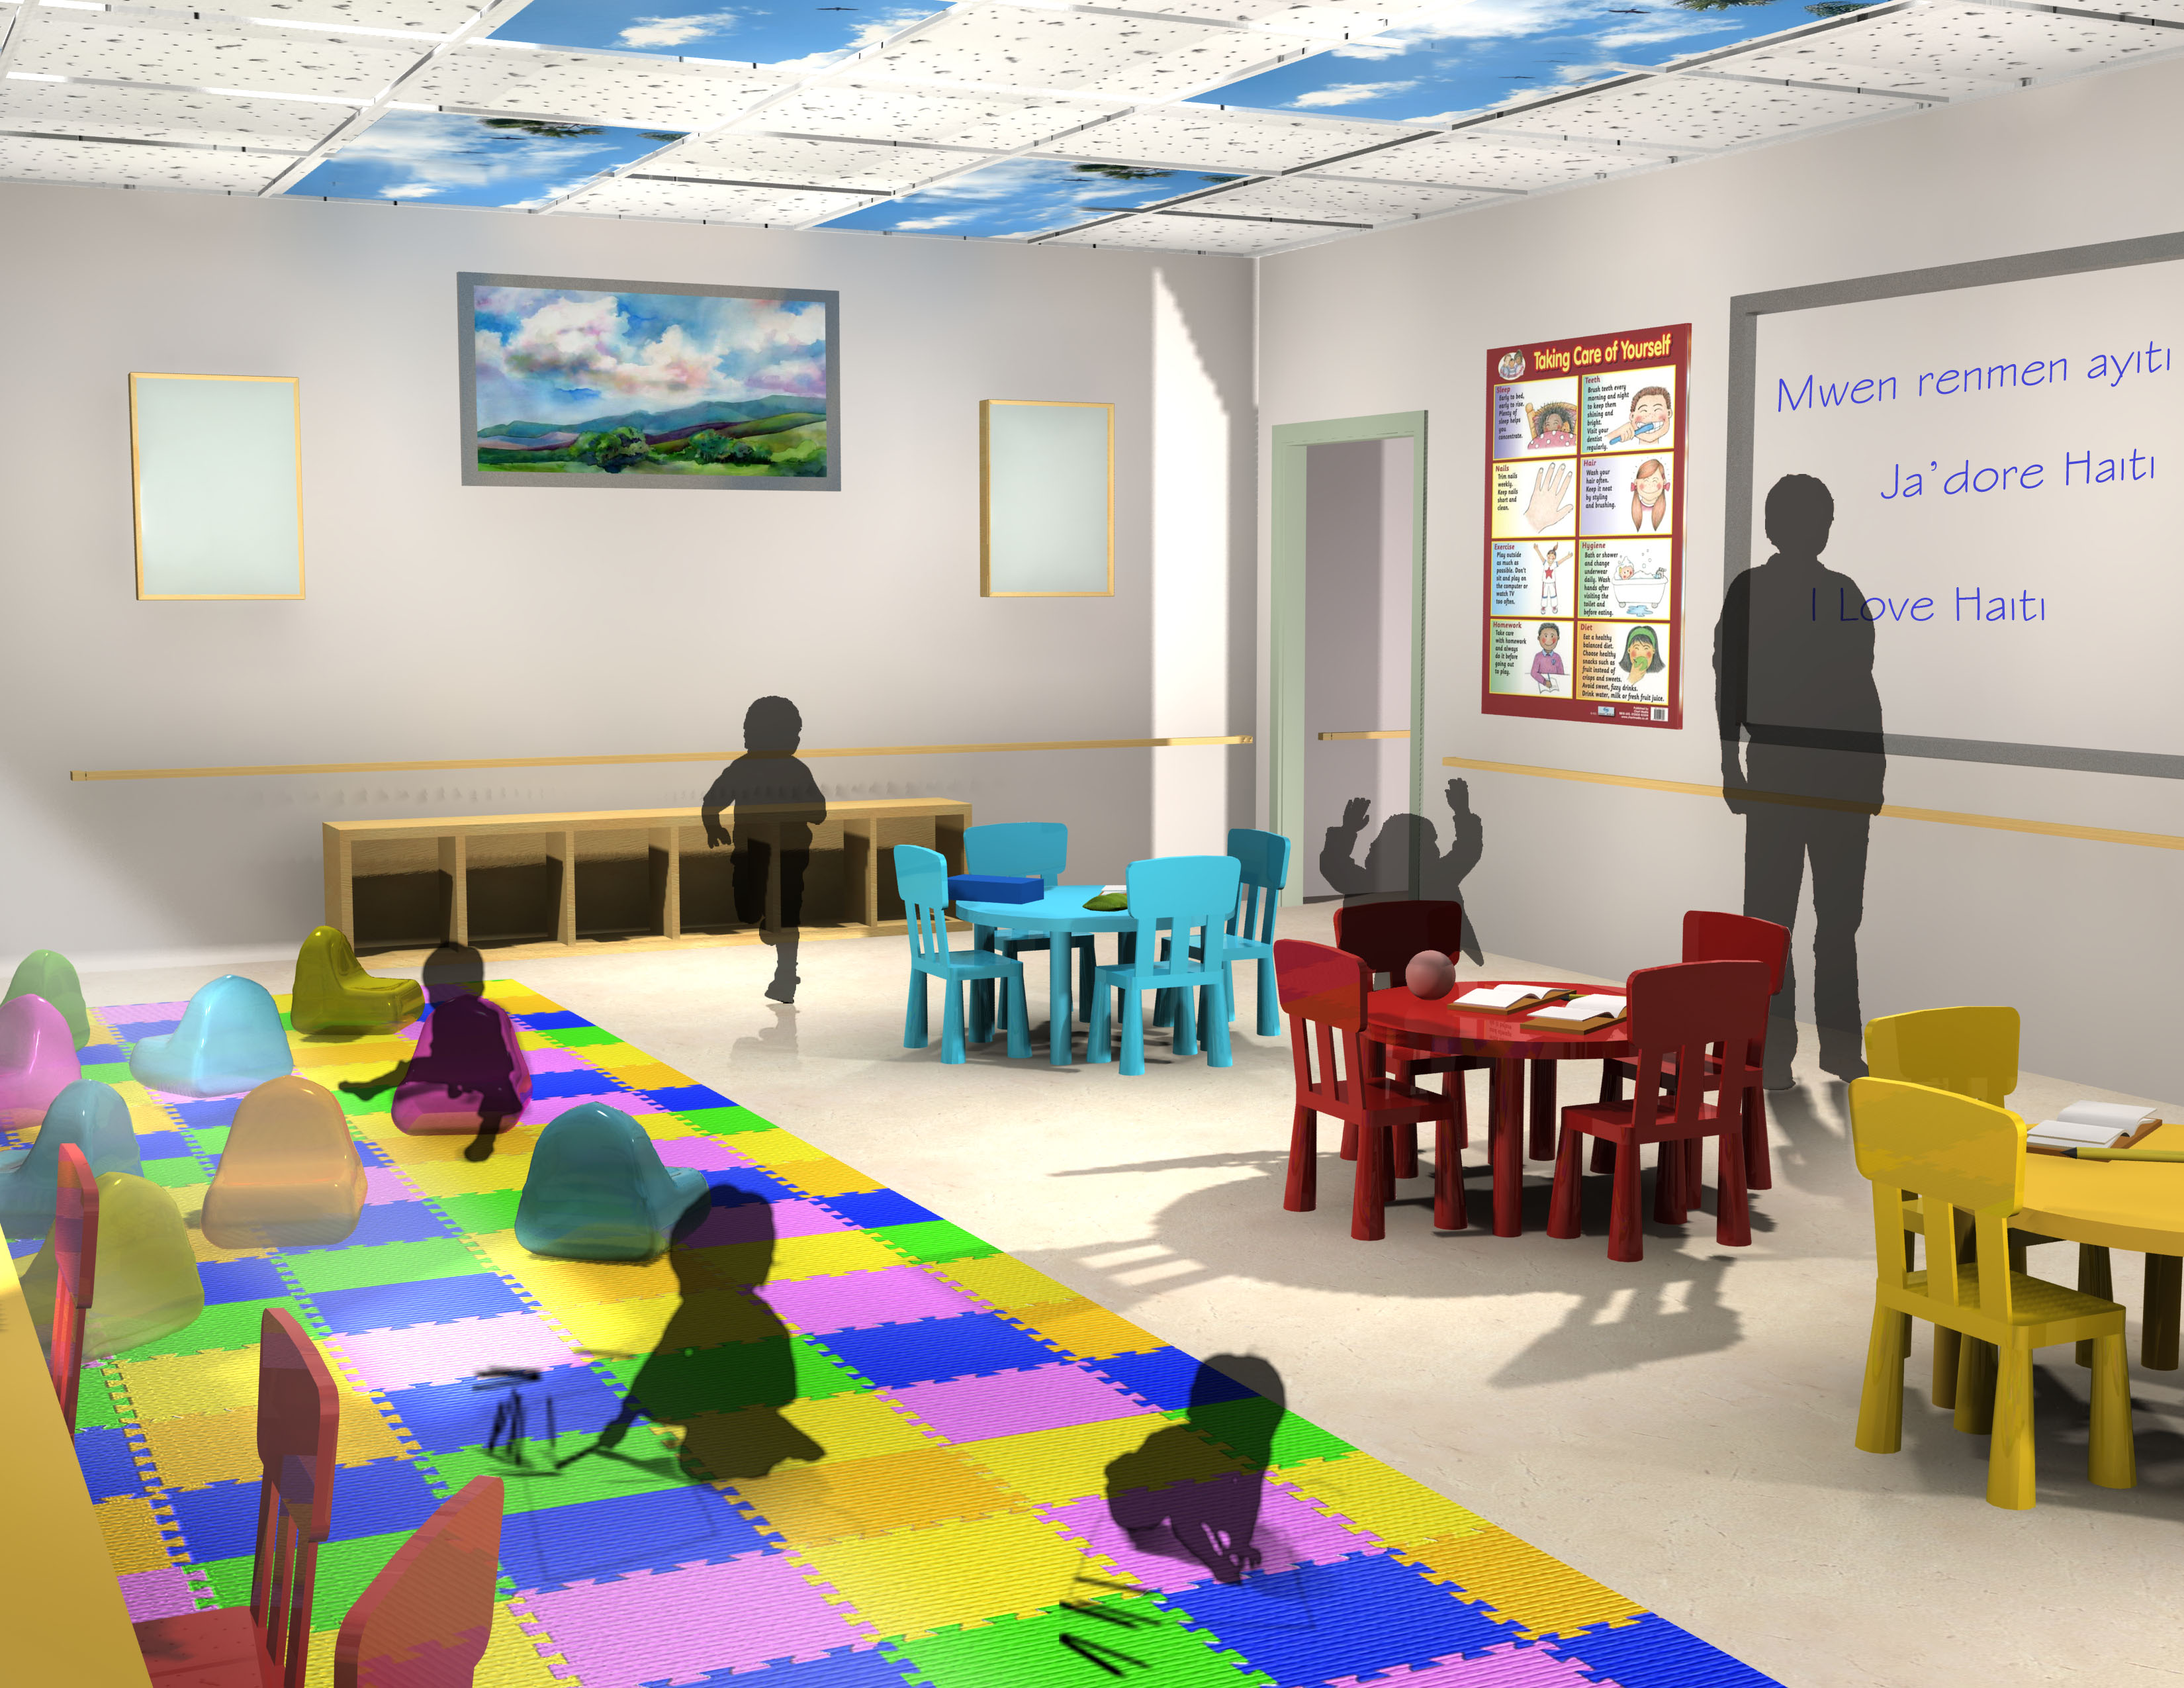 Clinic pediatric physical therapy - Children S Occupational Therapy Bon Maten Good Morning In Ayiti Is A Relief Clinic For Women And Children The Goal Of Its Design Using Modular Units